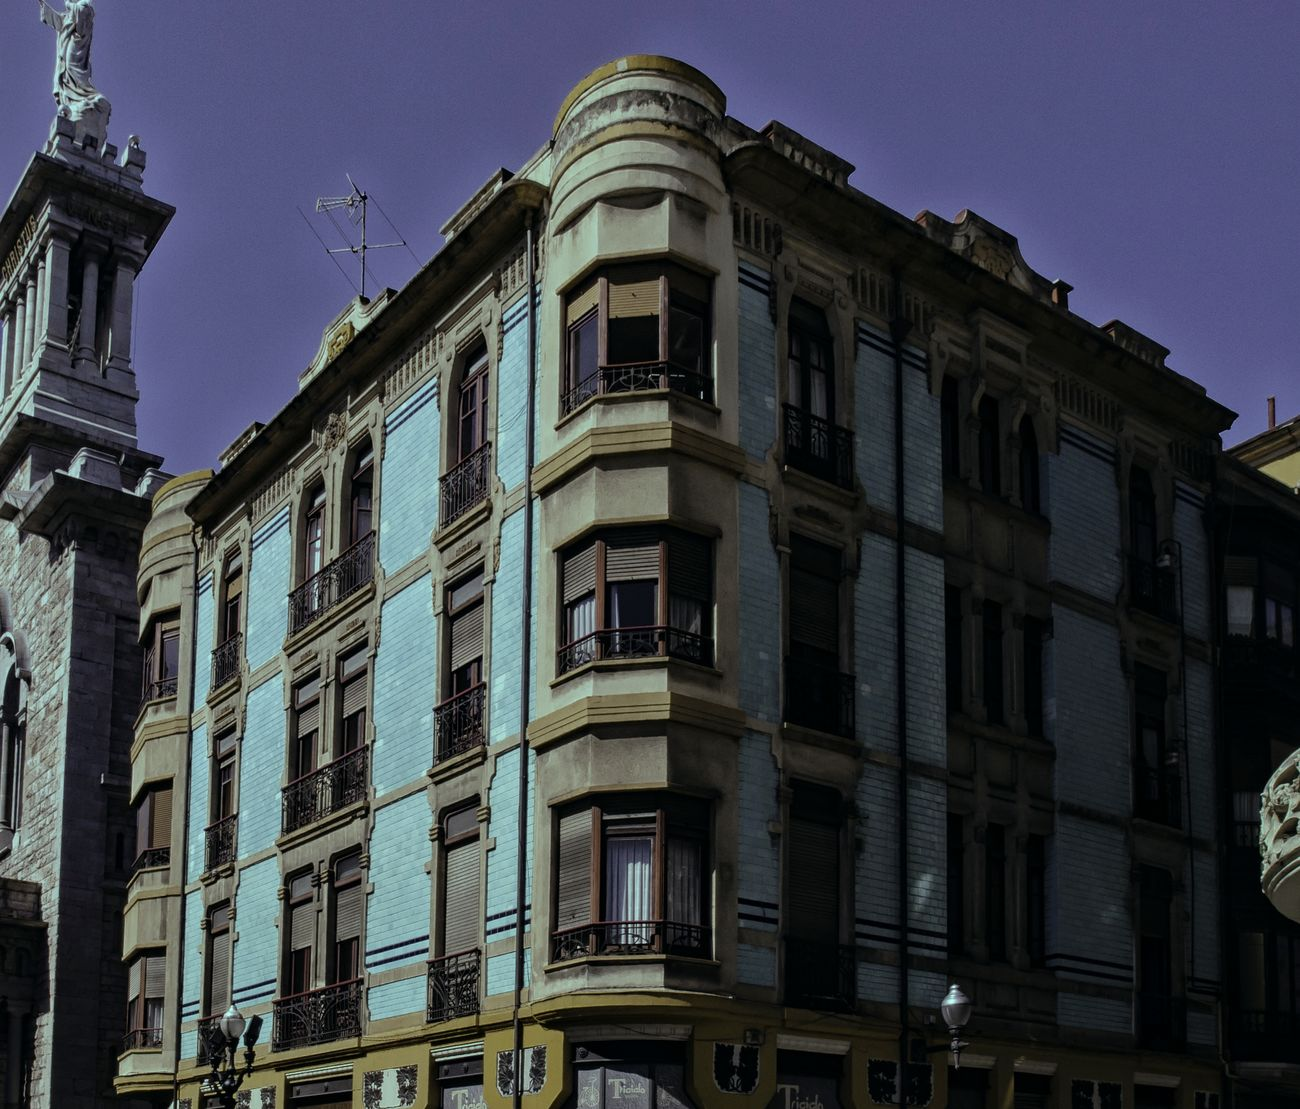 Architecture Asturias Building Exterior Built Structure Clear Sky Day Gijón Low Angle View No People Outdoors Sky Window